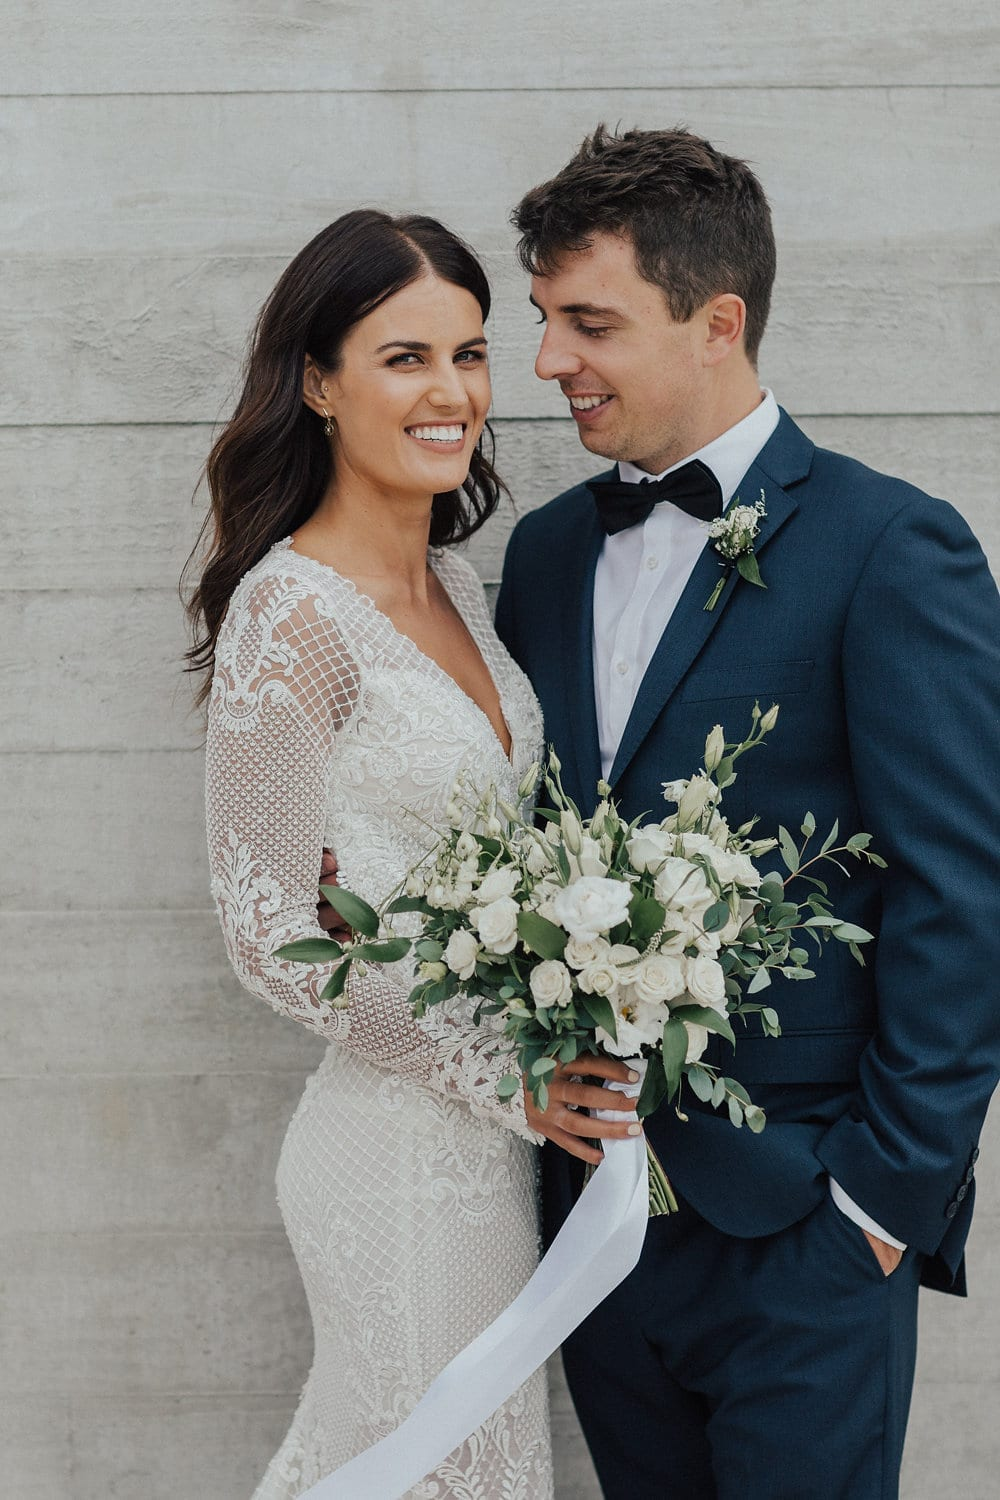 Real Weddings | Vinka Design | Real Brides Wearing Vinka Gowns | Nicole and Hayden close up smiling with custom dress v neck and detail